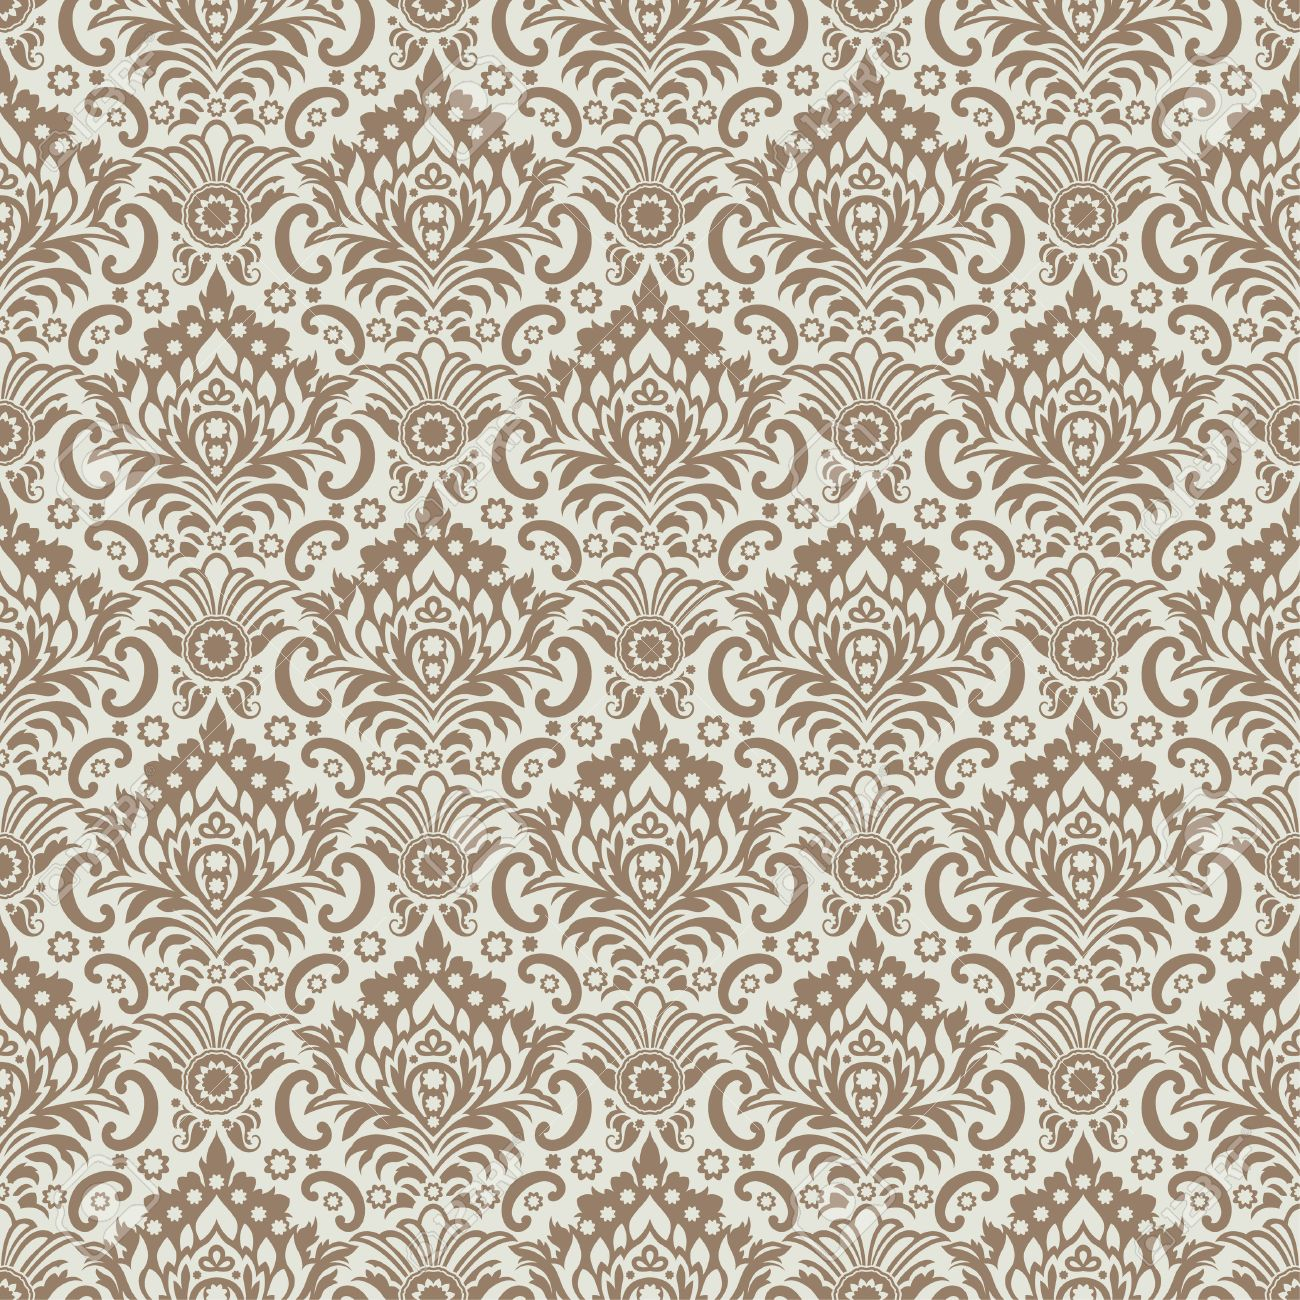 Seamless Classic Wallpaper Background Stock Vector 5226935  Seamless  Classic Wallpaper Background Royalty Free Cliparts. Seamless Victorian Wallpaper Texture